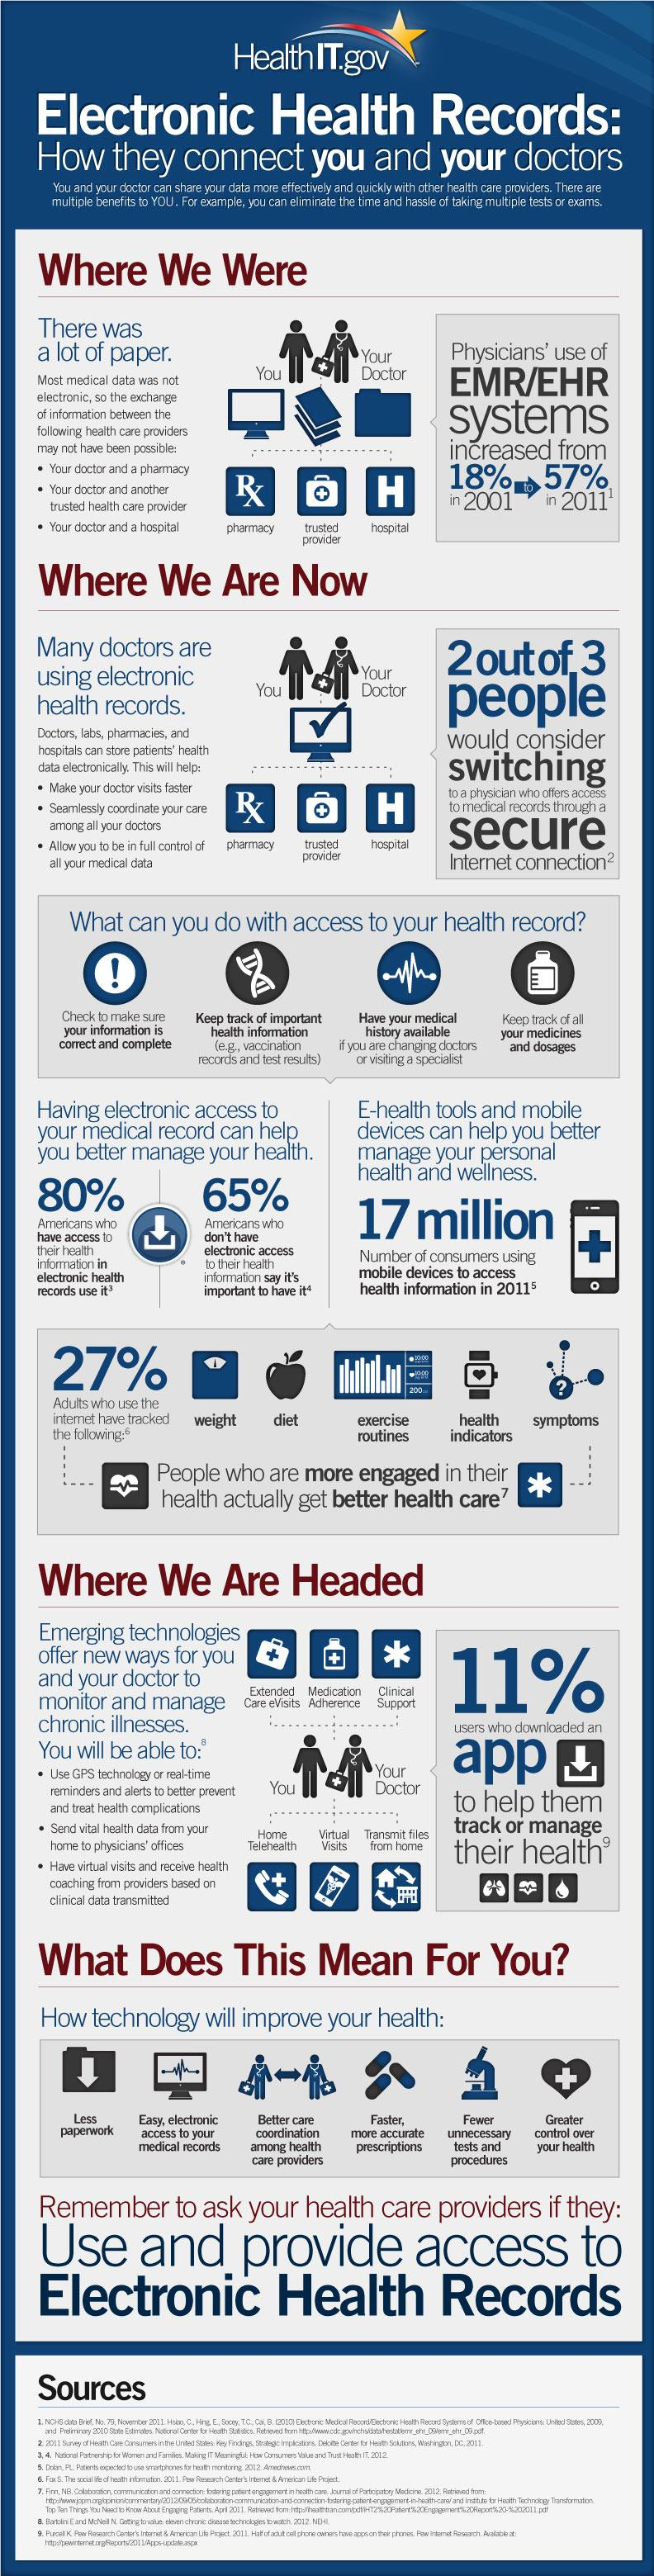 Electronic Health Records Infographic Image